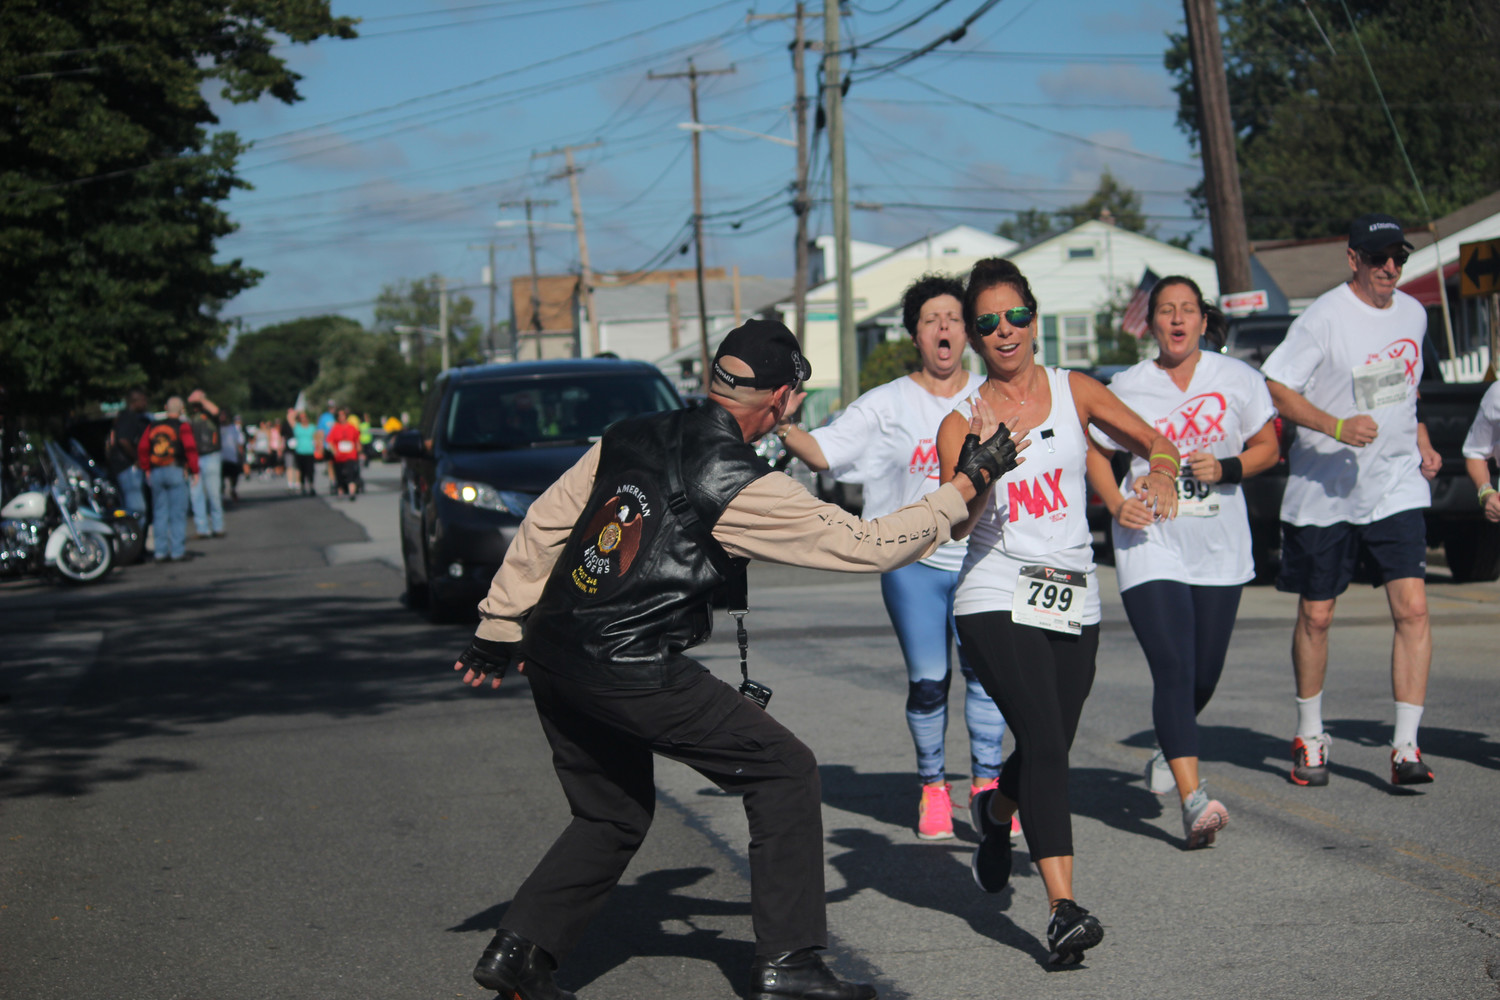 Nearly 200 runners participated in Assemblyman Brian Curran's third annual Run For Heroes 5K, which benefitted many veterans' posts. About 40 of the runners came from the Max Challenge of the Five Towns gym, many of whom were encouraged by the veterans as they ran.